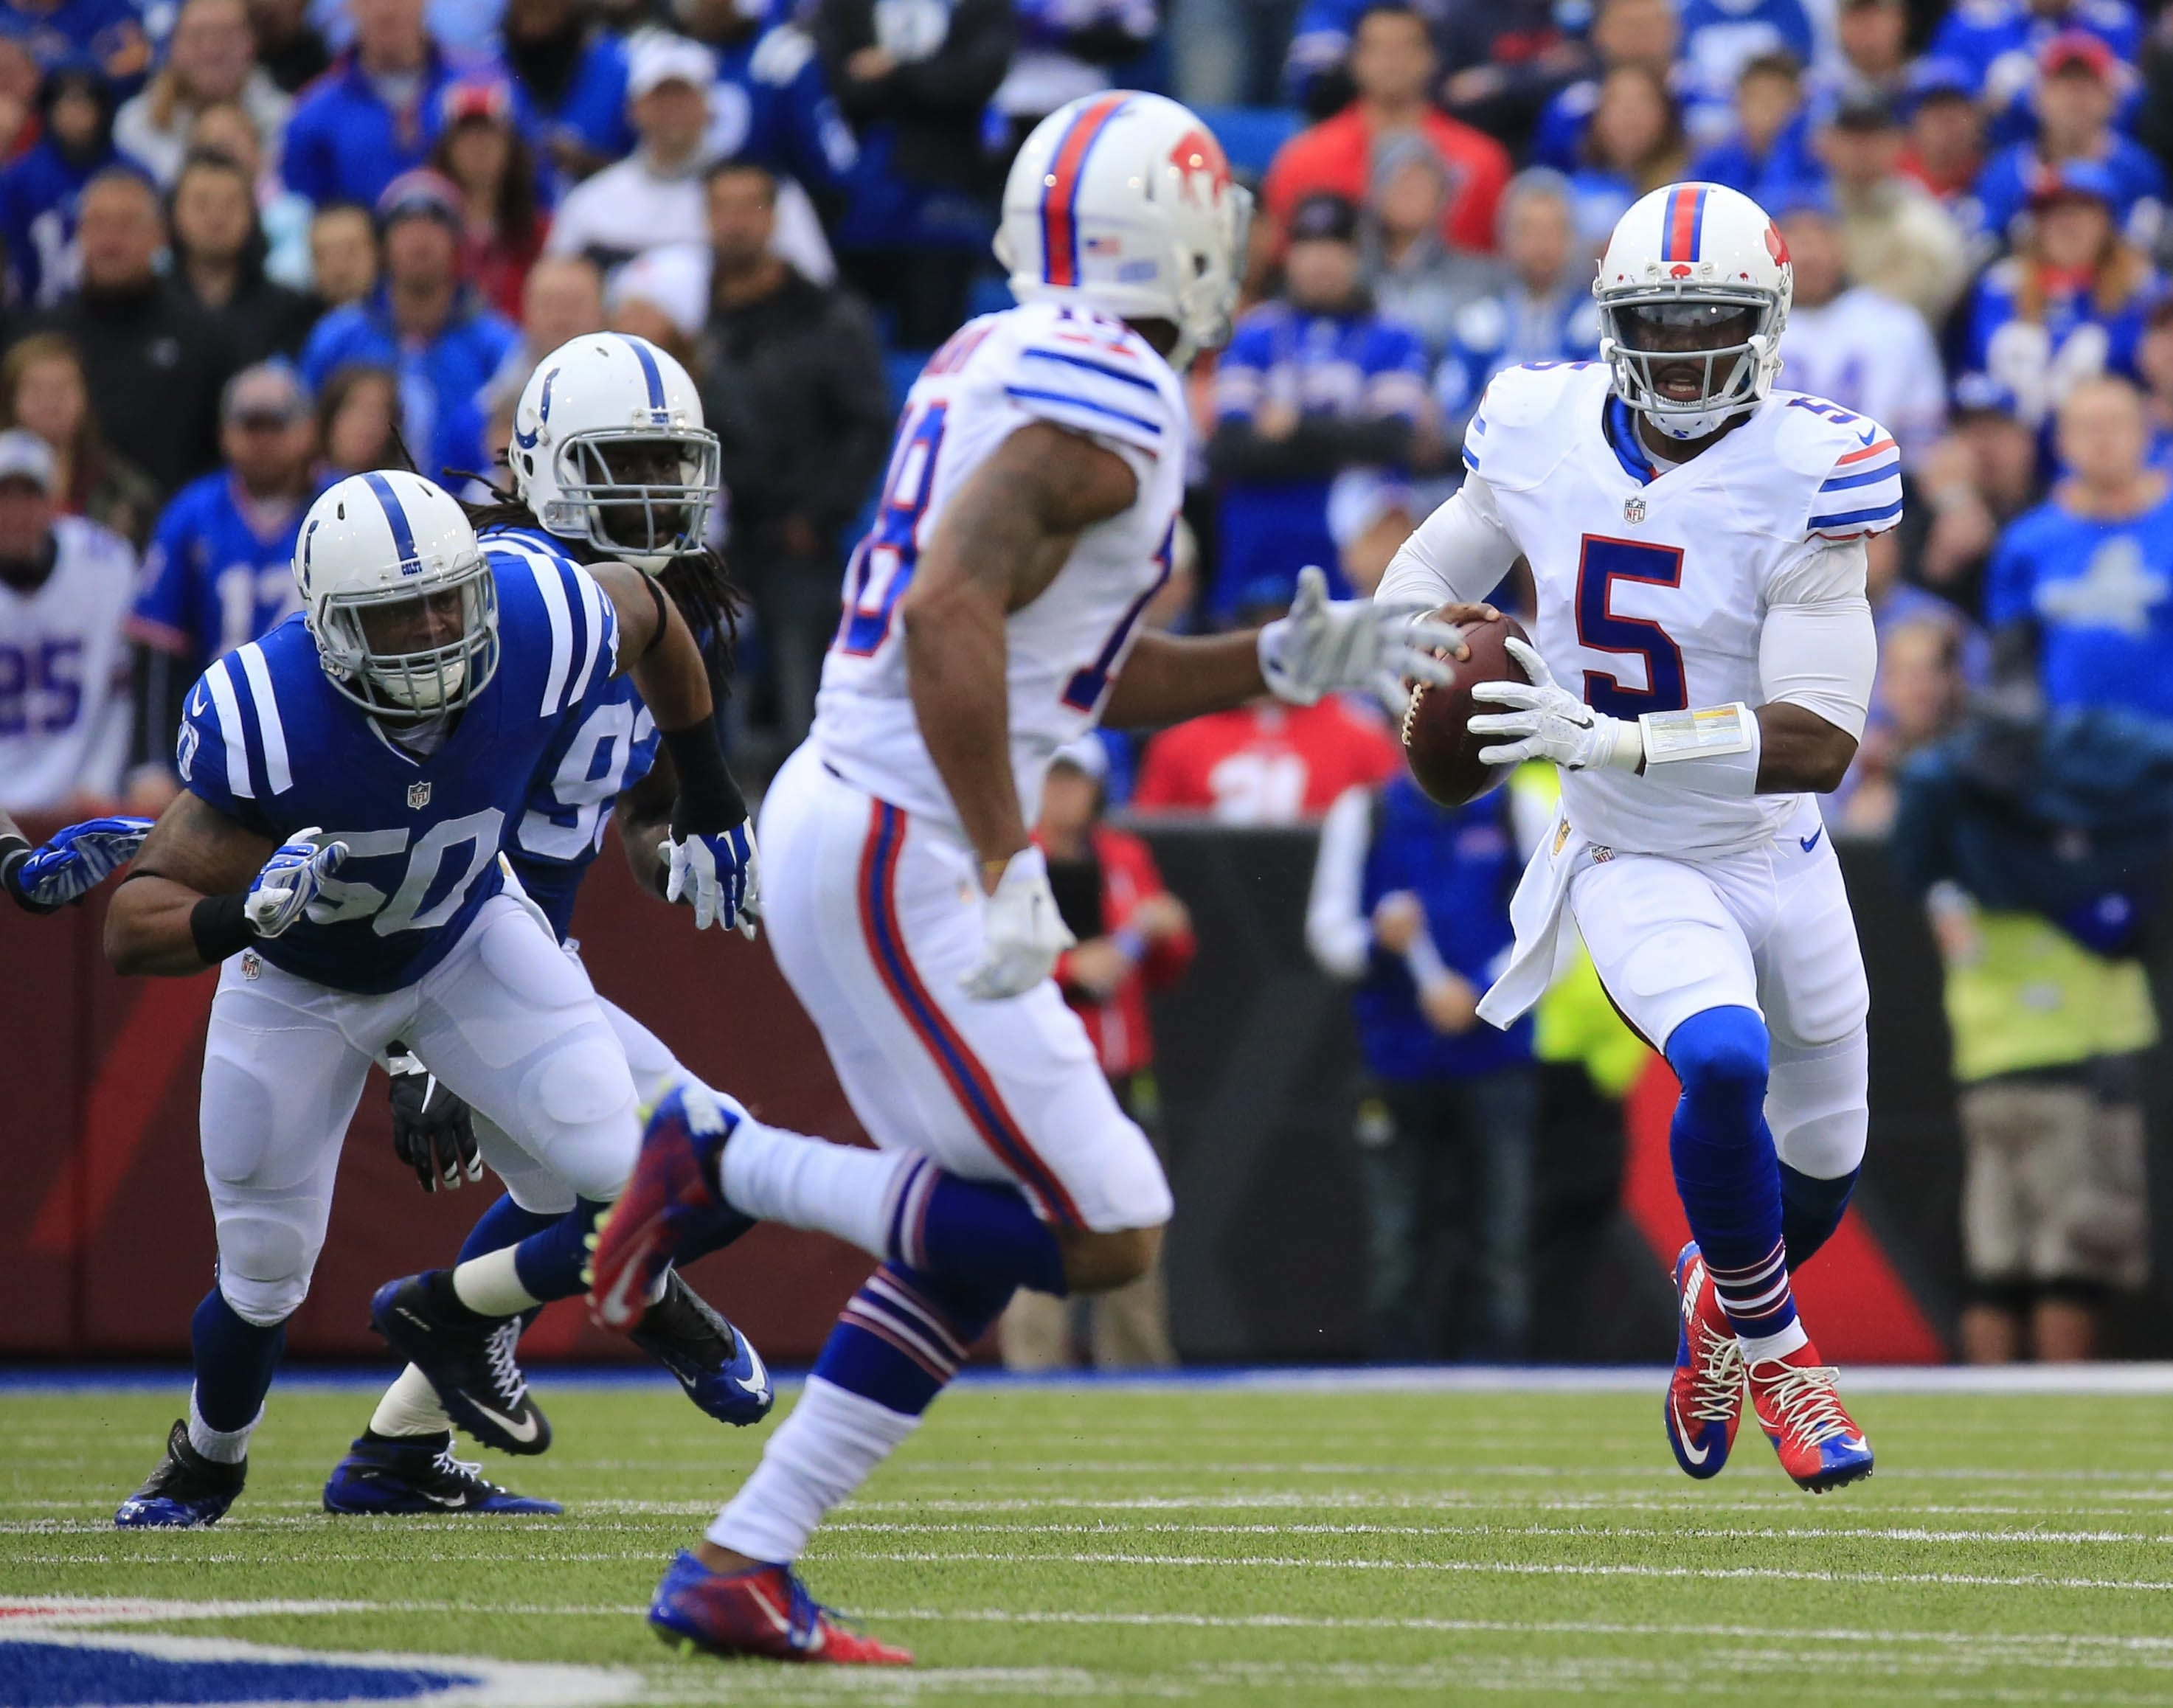 Bills quarterback Tyrod Taylor was the best player on the field Sunday. He completed 14 of his first 16 passes for 195 yards. He was in command all day and injected confidence into his teammates.